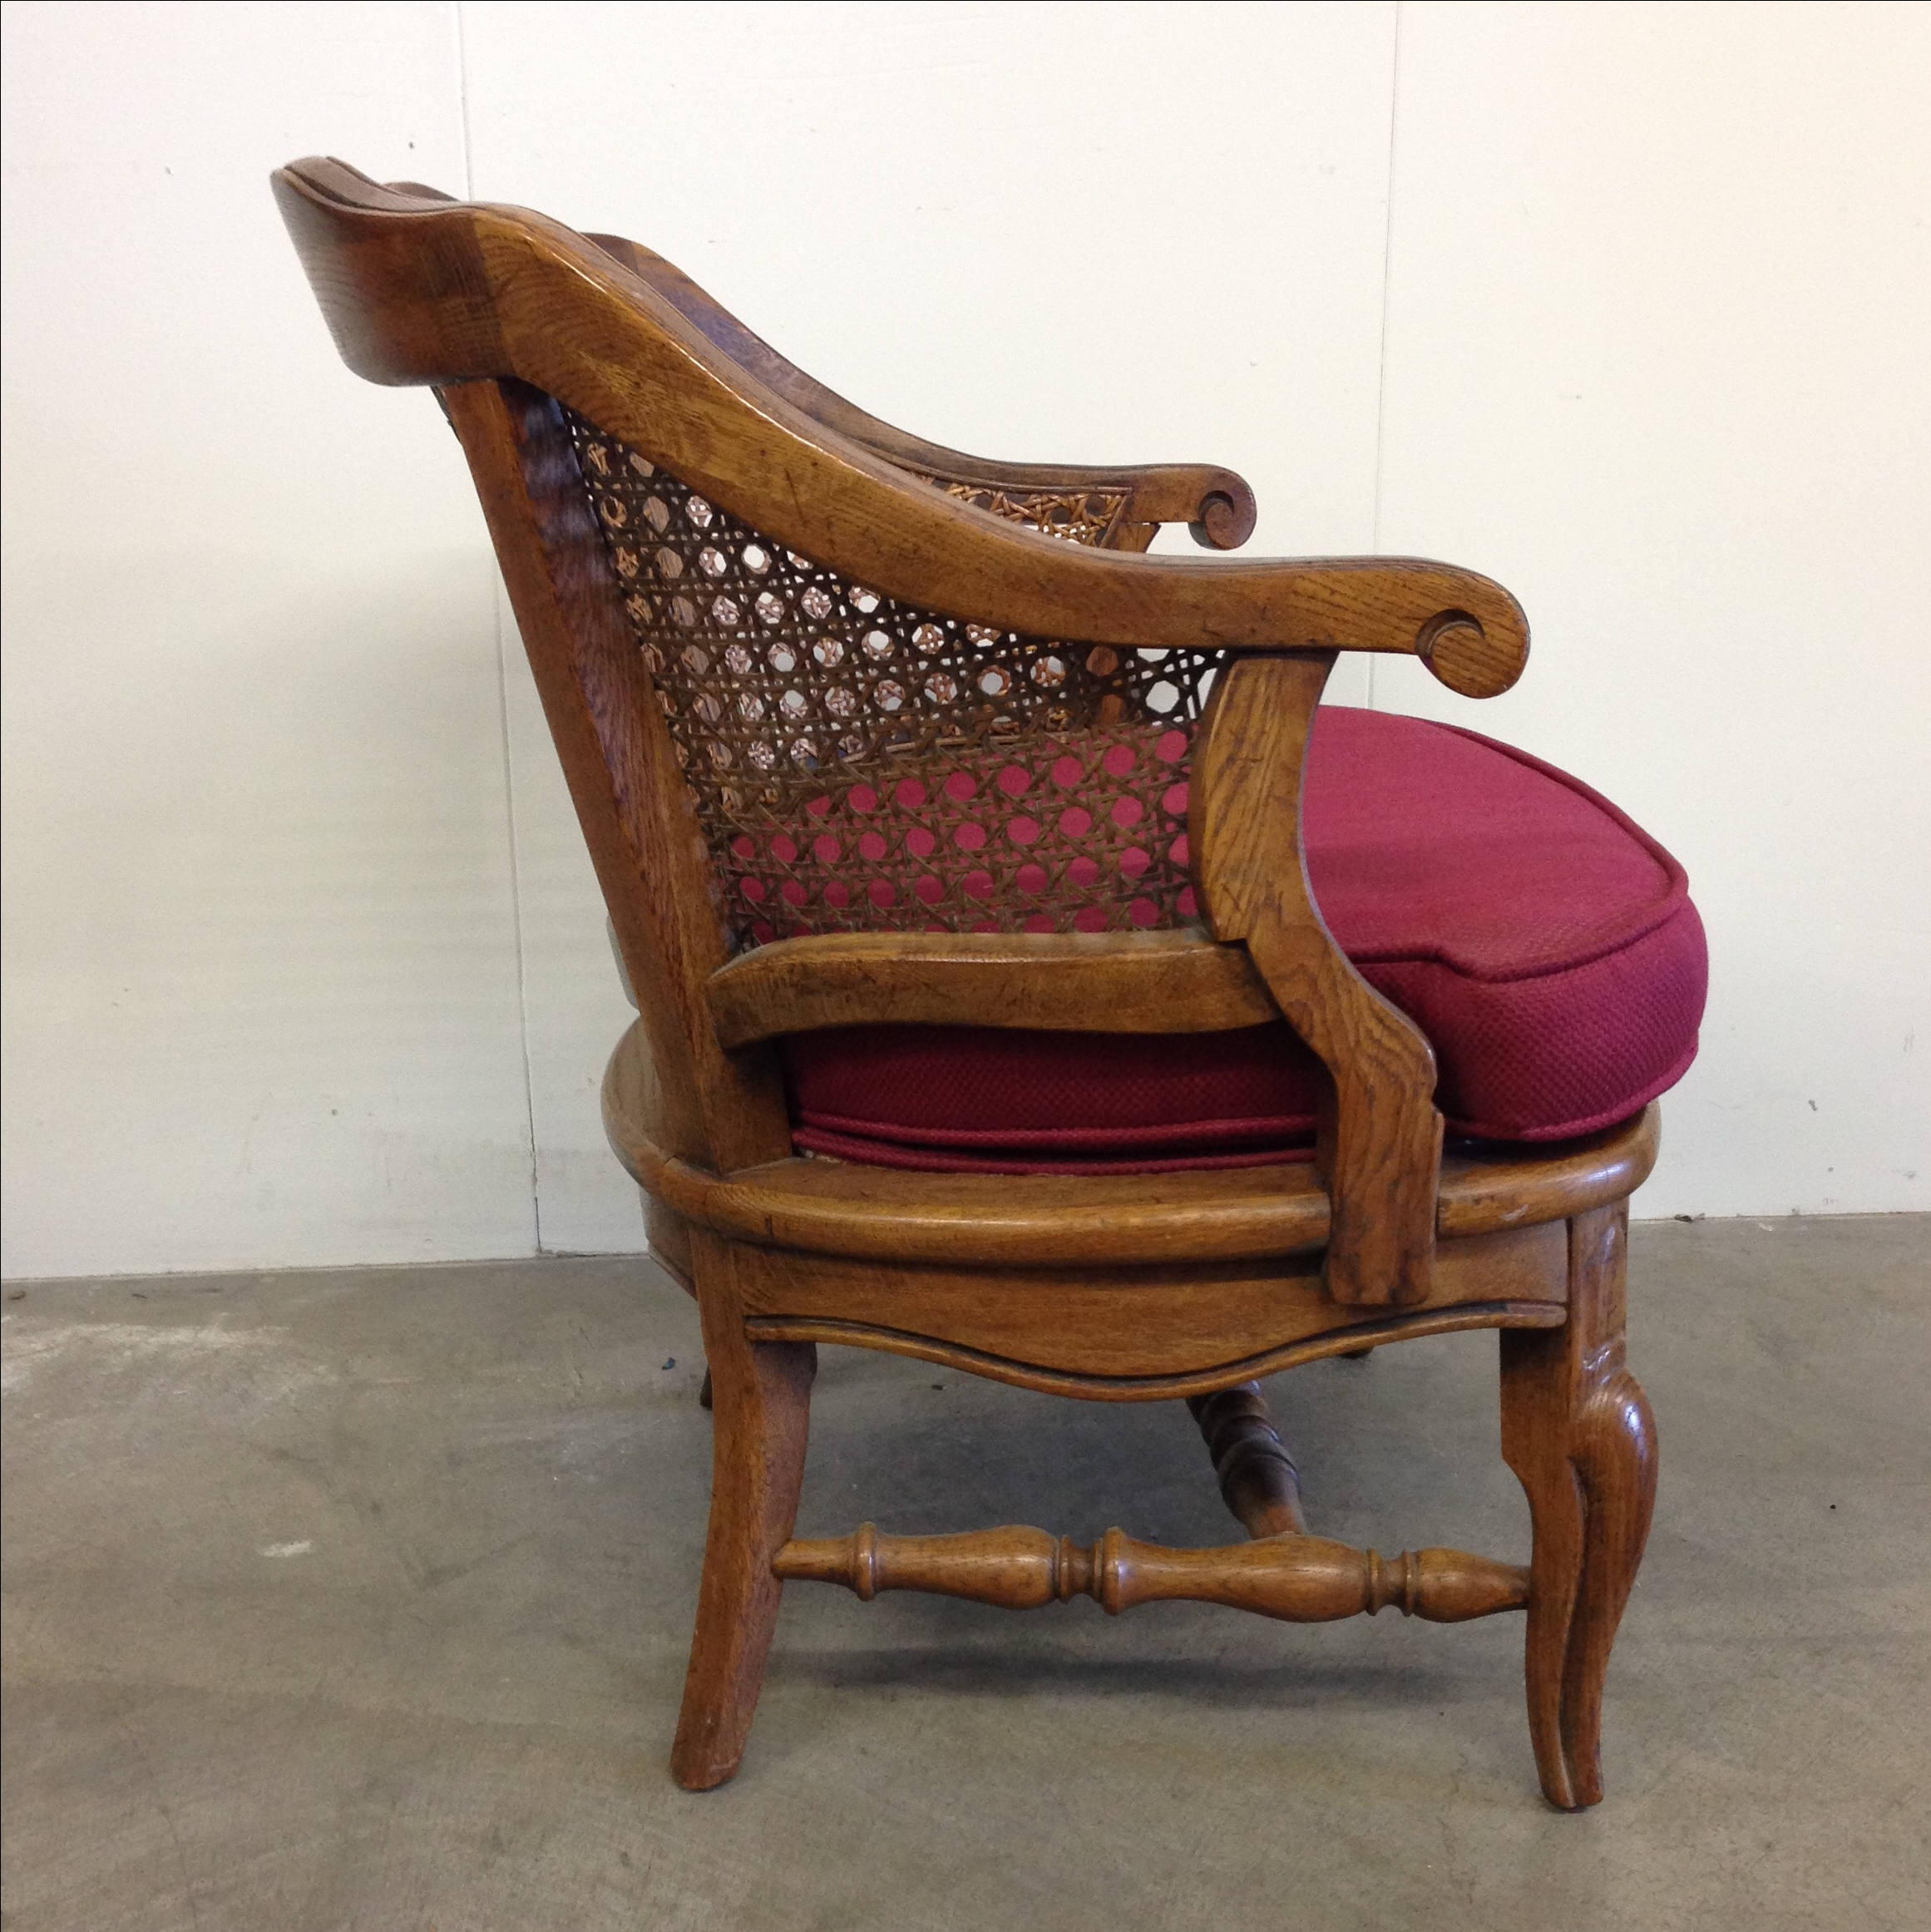 Genial French Provincial Cane Back Barrel Chair   Image 3 Of 10